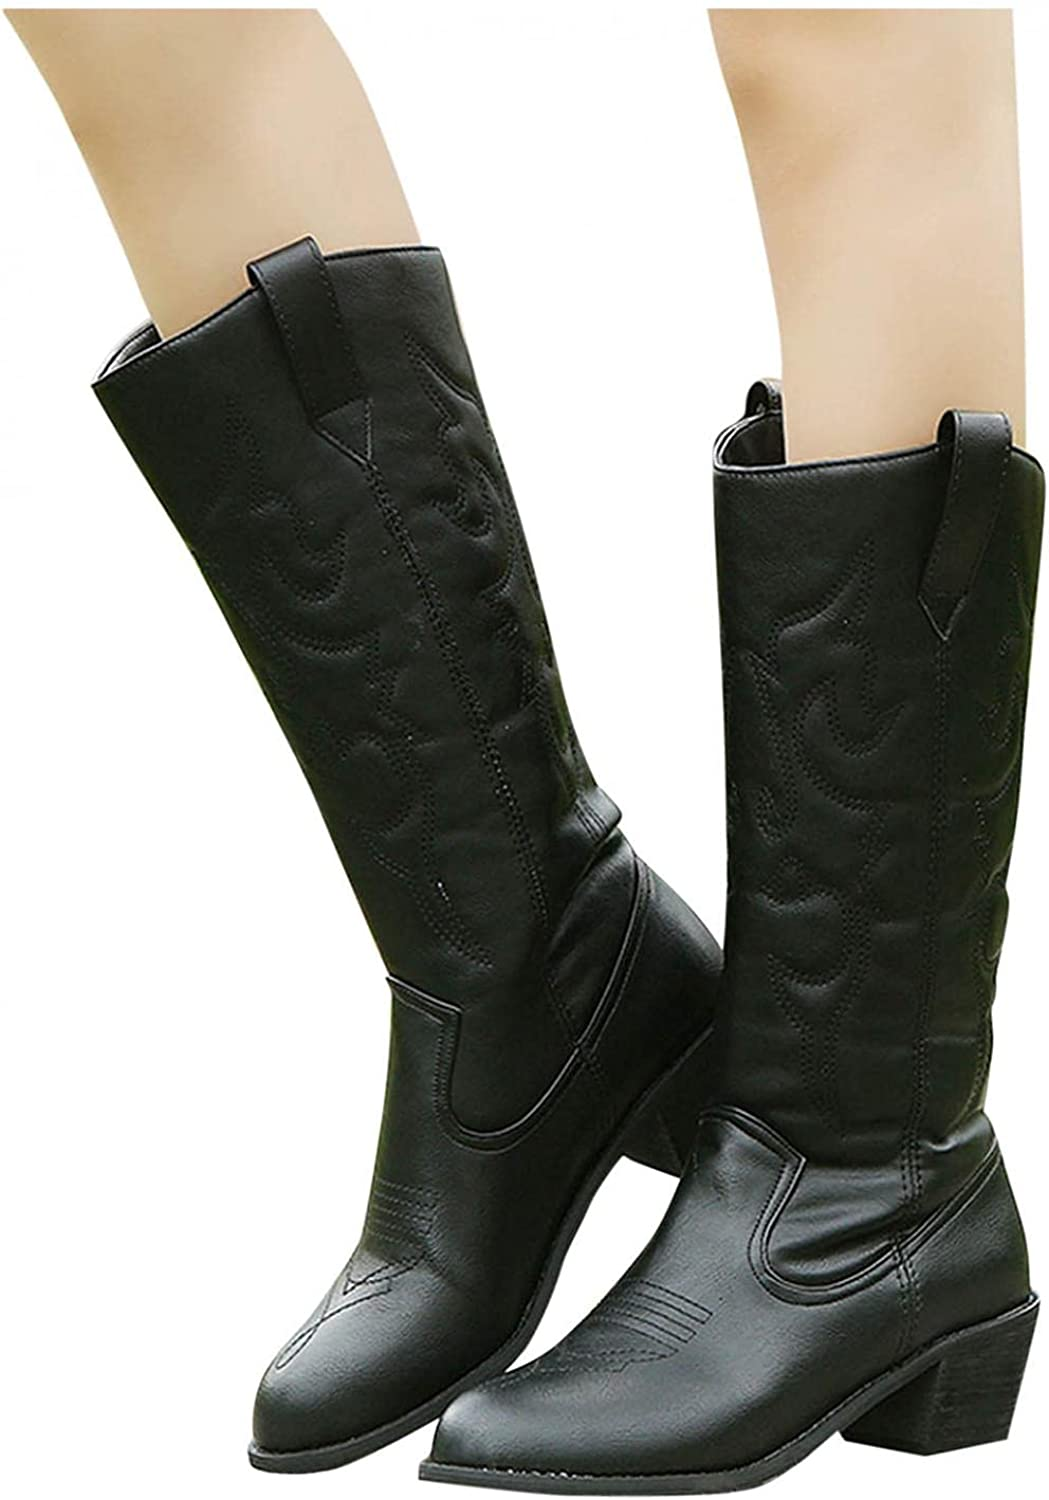 Omaha Mall Eduavar security Ankle Boots for Women Fashion Cowboy Wide Calf Flat Boot